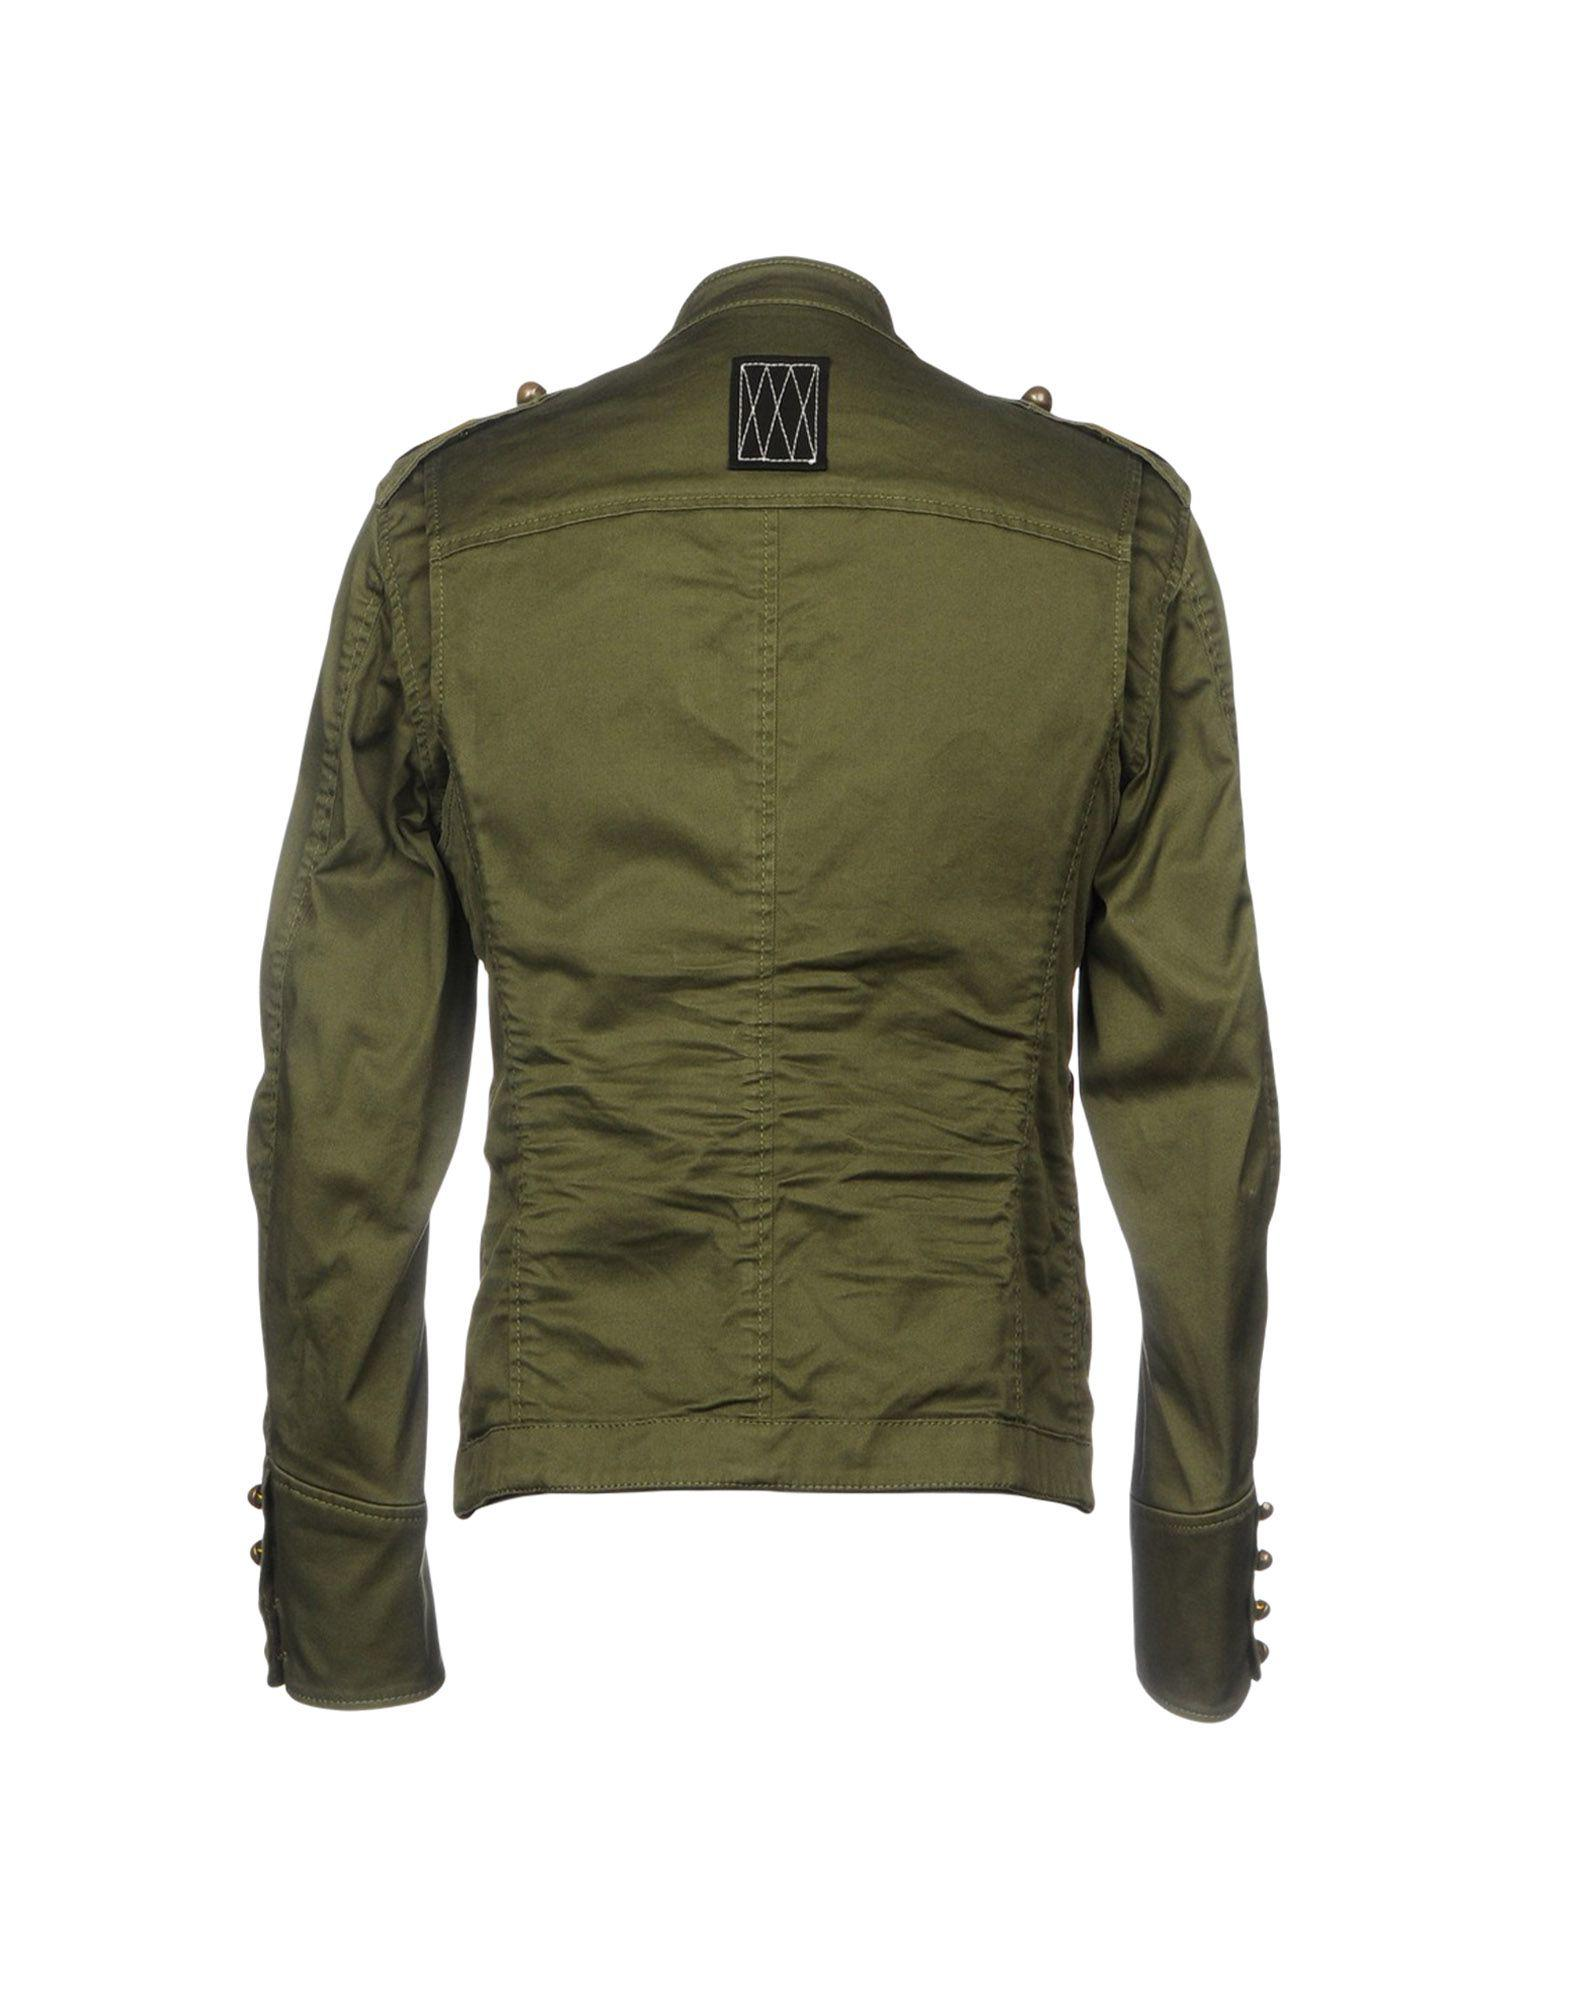 DSquared² Cotton Jacket in Green for Men